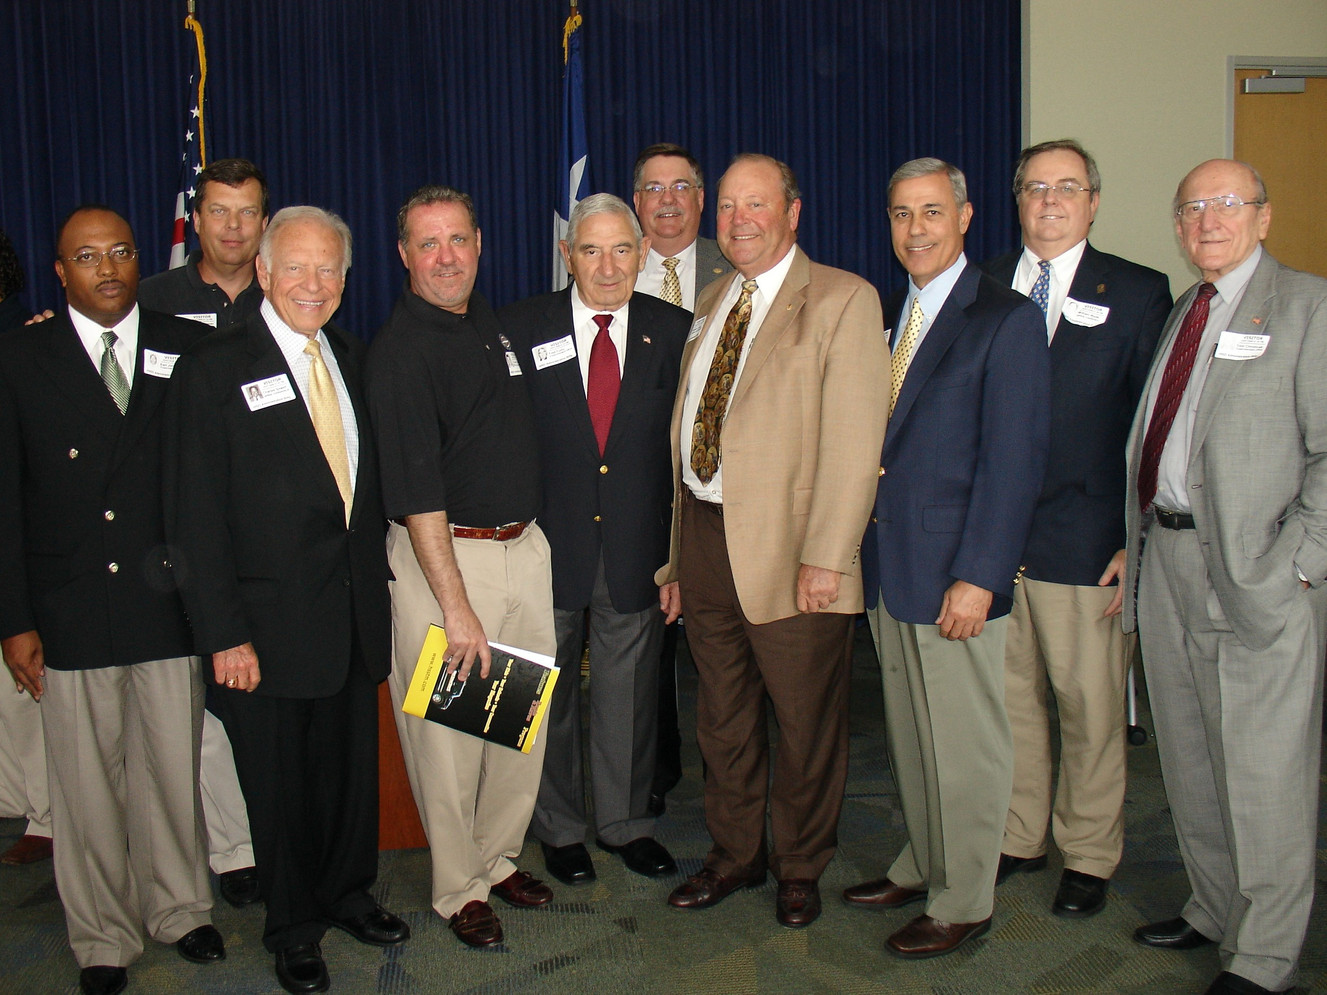 TD Club Board group shot.jpg